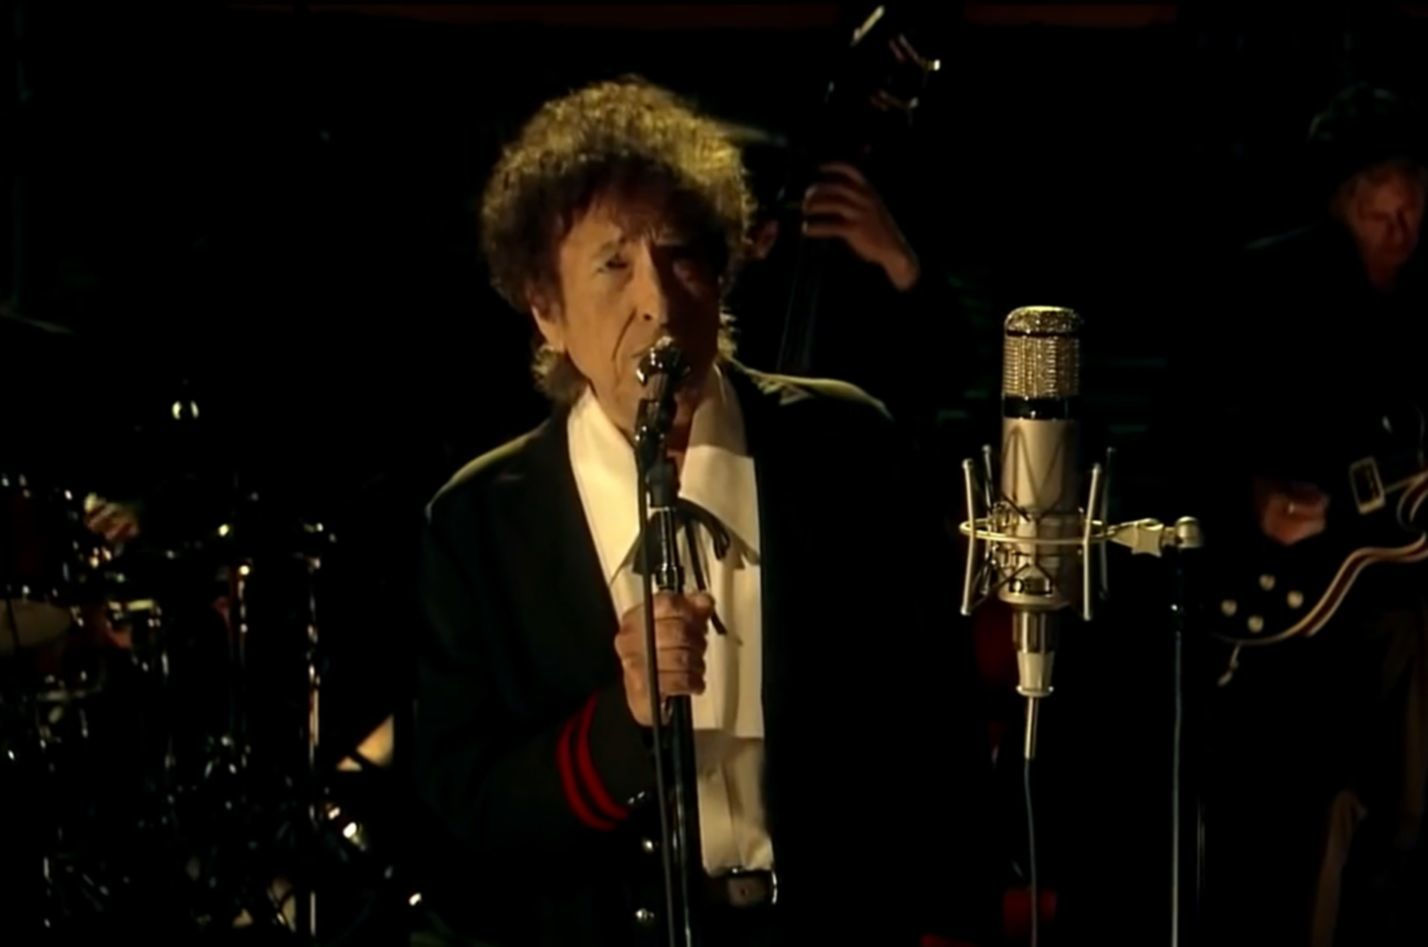 bob dylan video still 2015